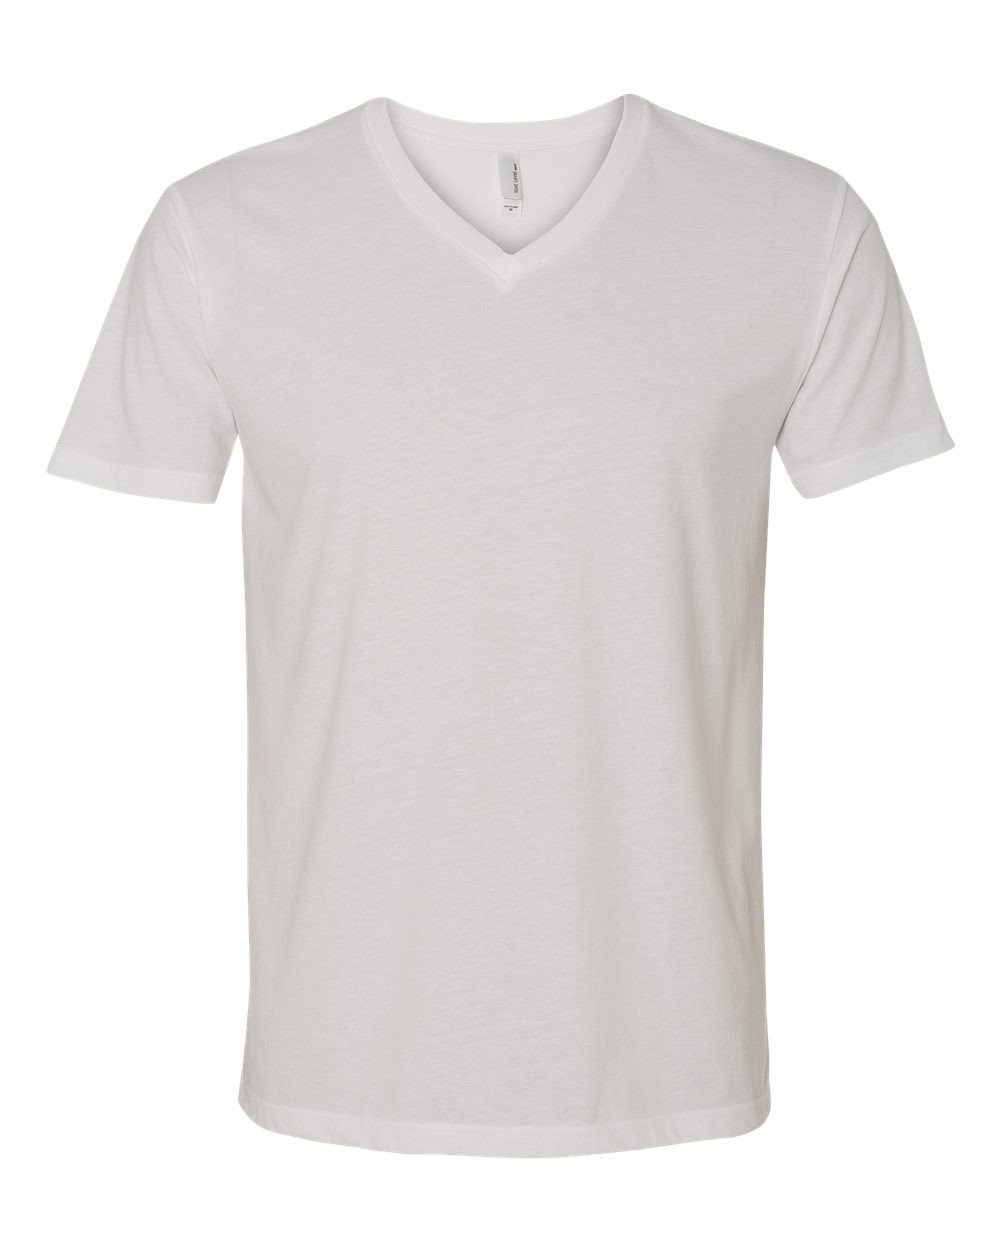 Next Level Apparel 6440 Mens Premium Fitted Sueded V-Neck Tee - White, Large